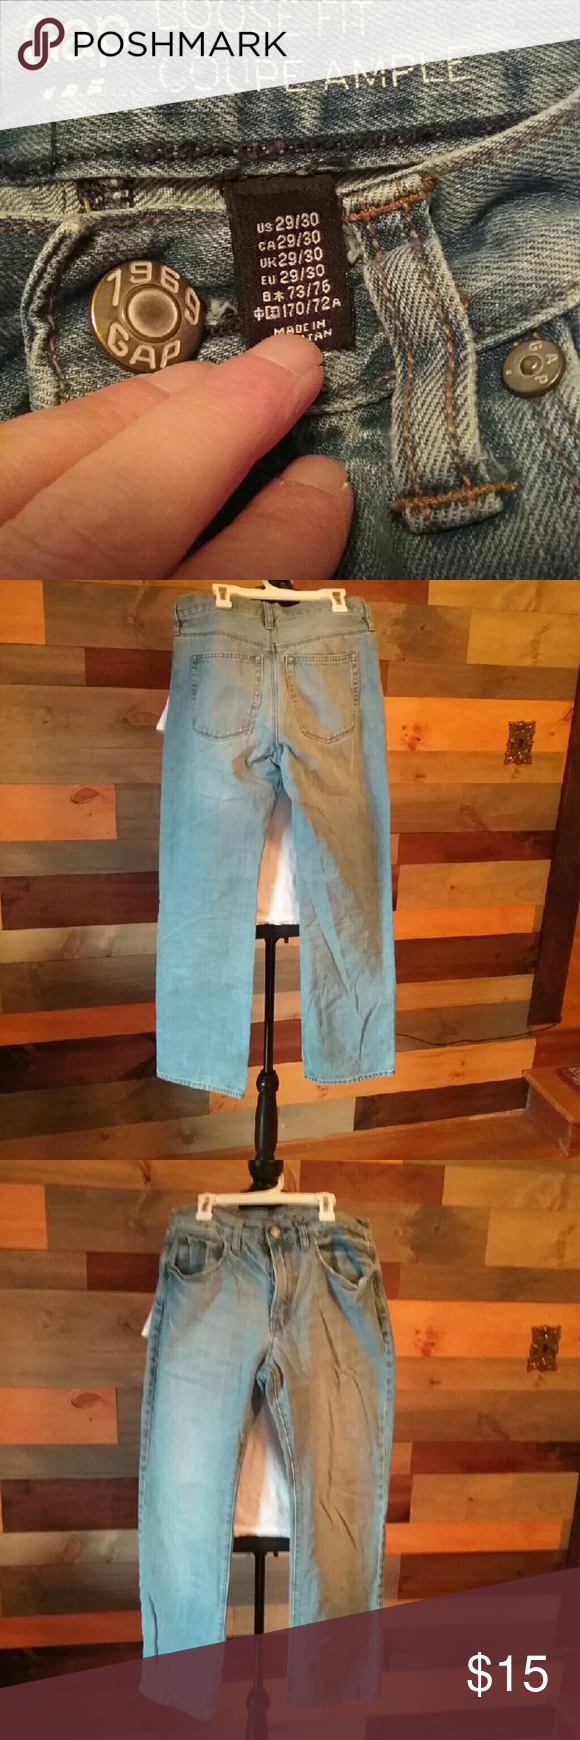 Gap light wash jeans. Size 29x30. Light wash jeans in great condition. Very light wear at bottom of legs as shown in pic 4. GAP Jeans